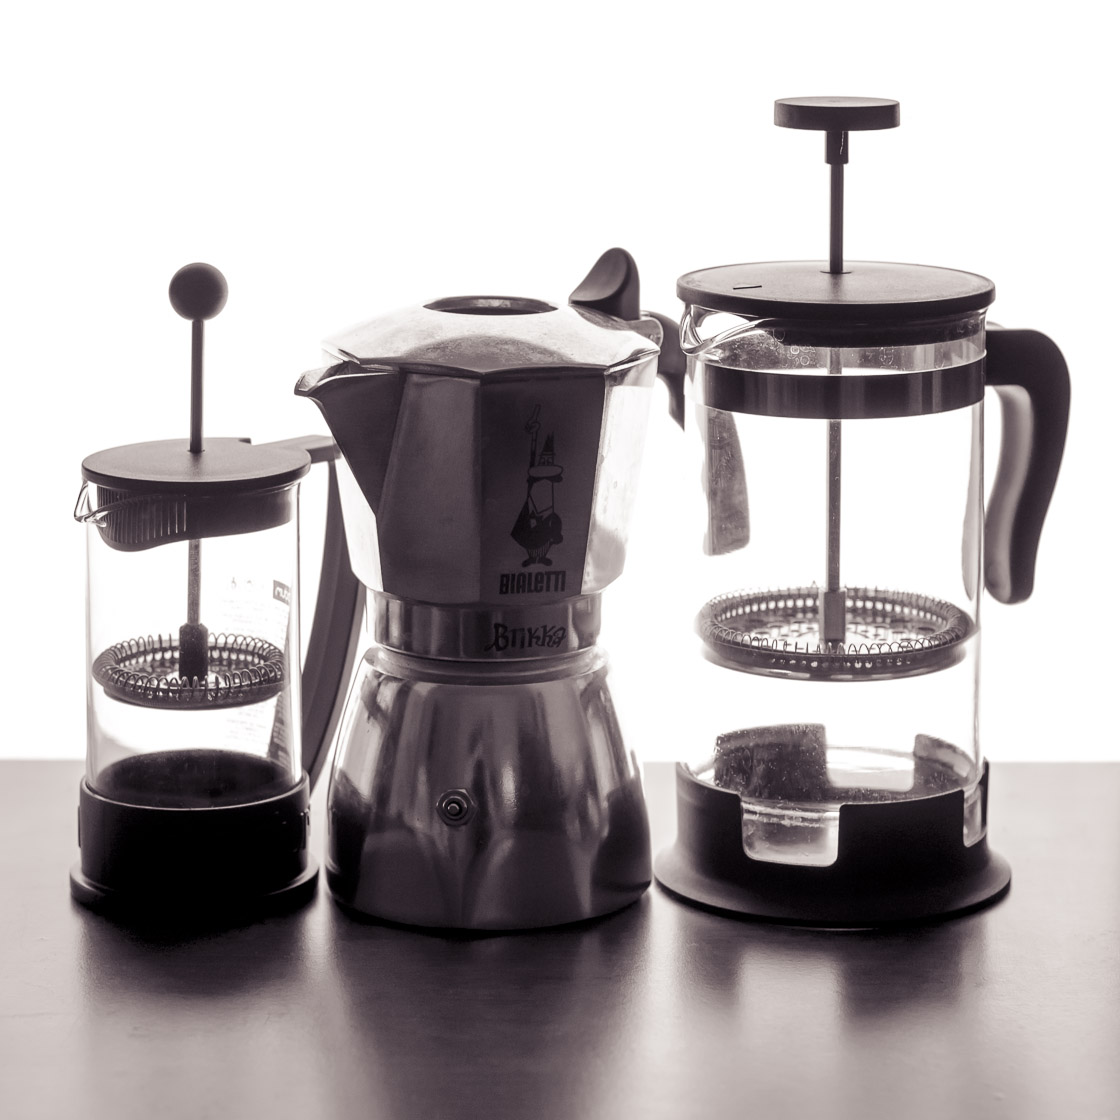 Drei Kaffeekannen: große French Press, kleine French Press, Bialetti Brikka